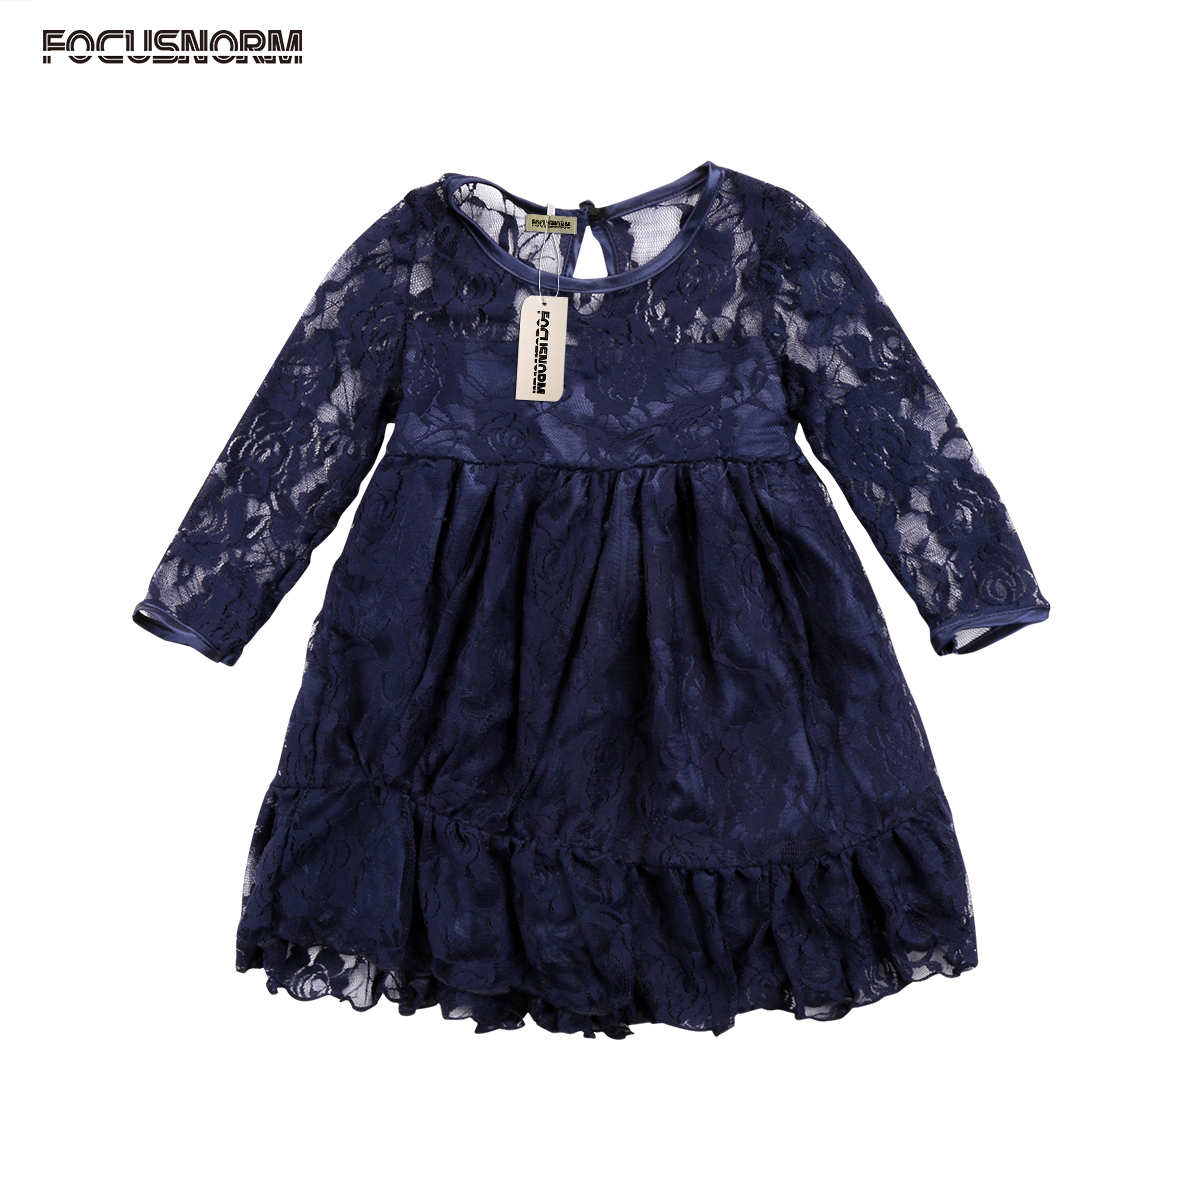 Kids Baby Girls Lace Floral Princess Party Long Sleeves Dress Formal Hollow Out Outfits Clothes Gown long criss cross open back formal party dress